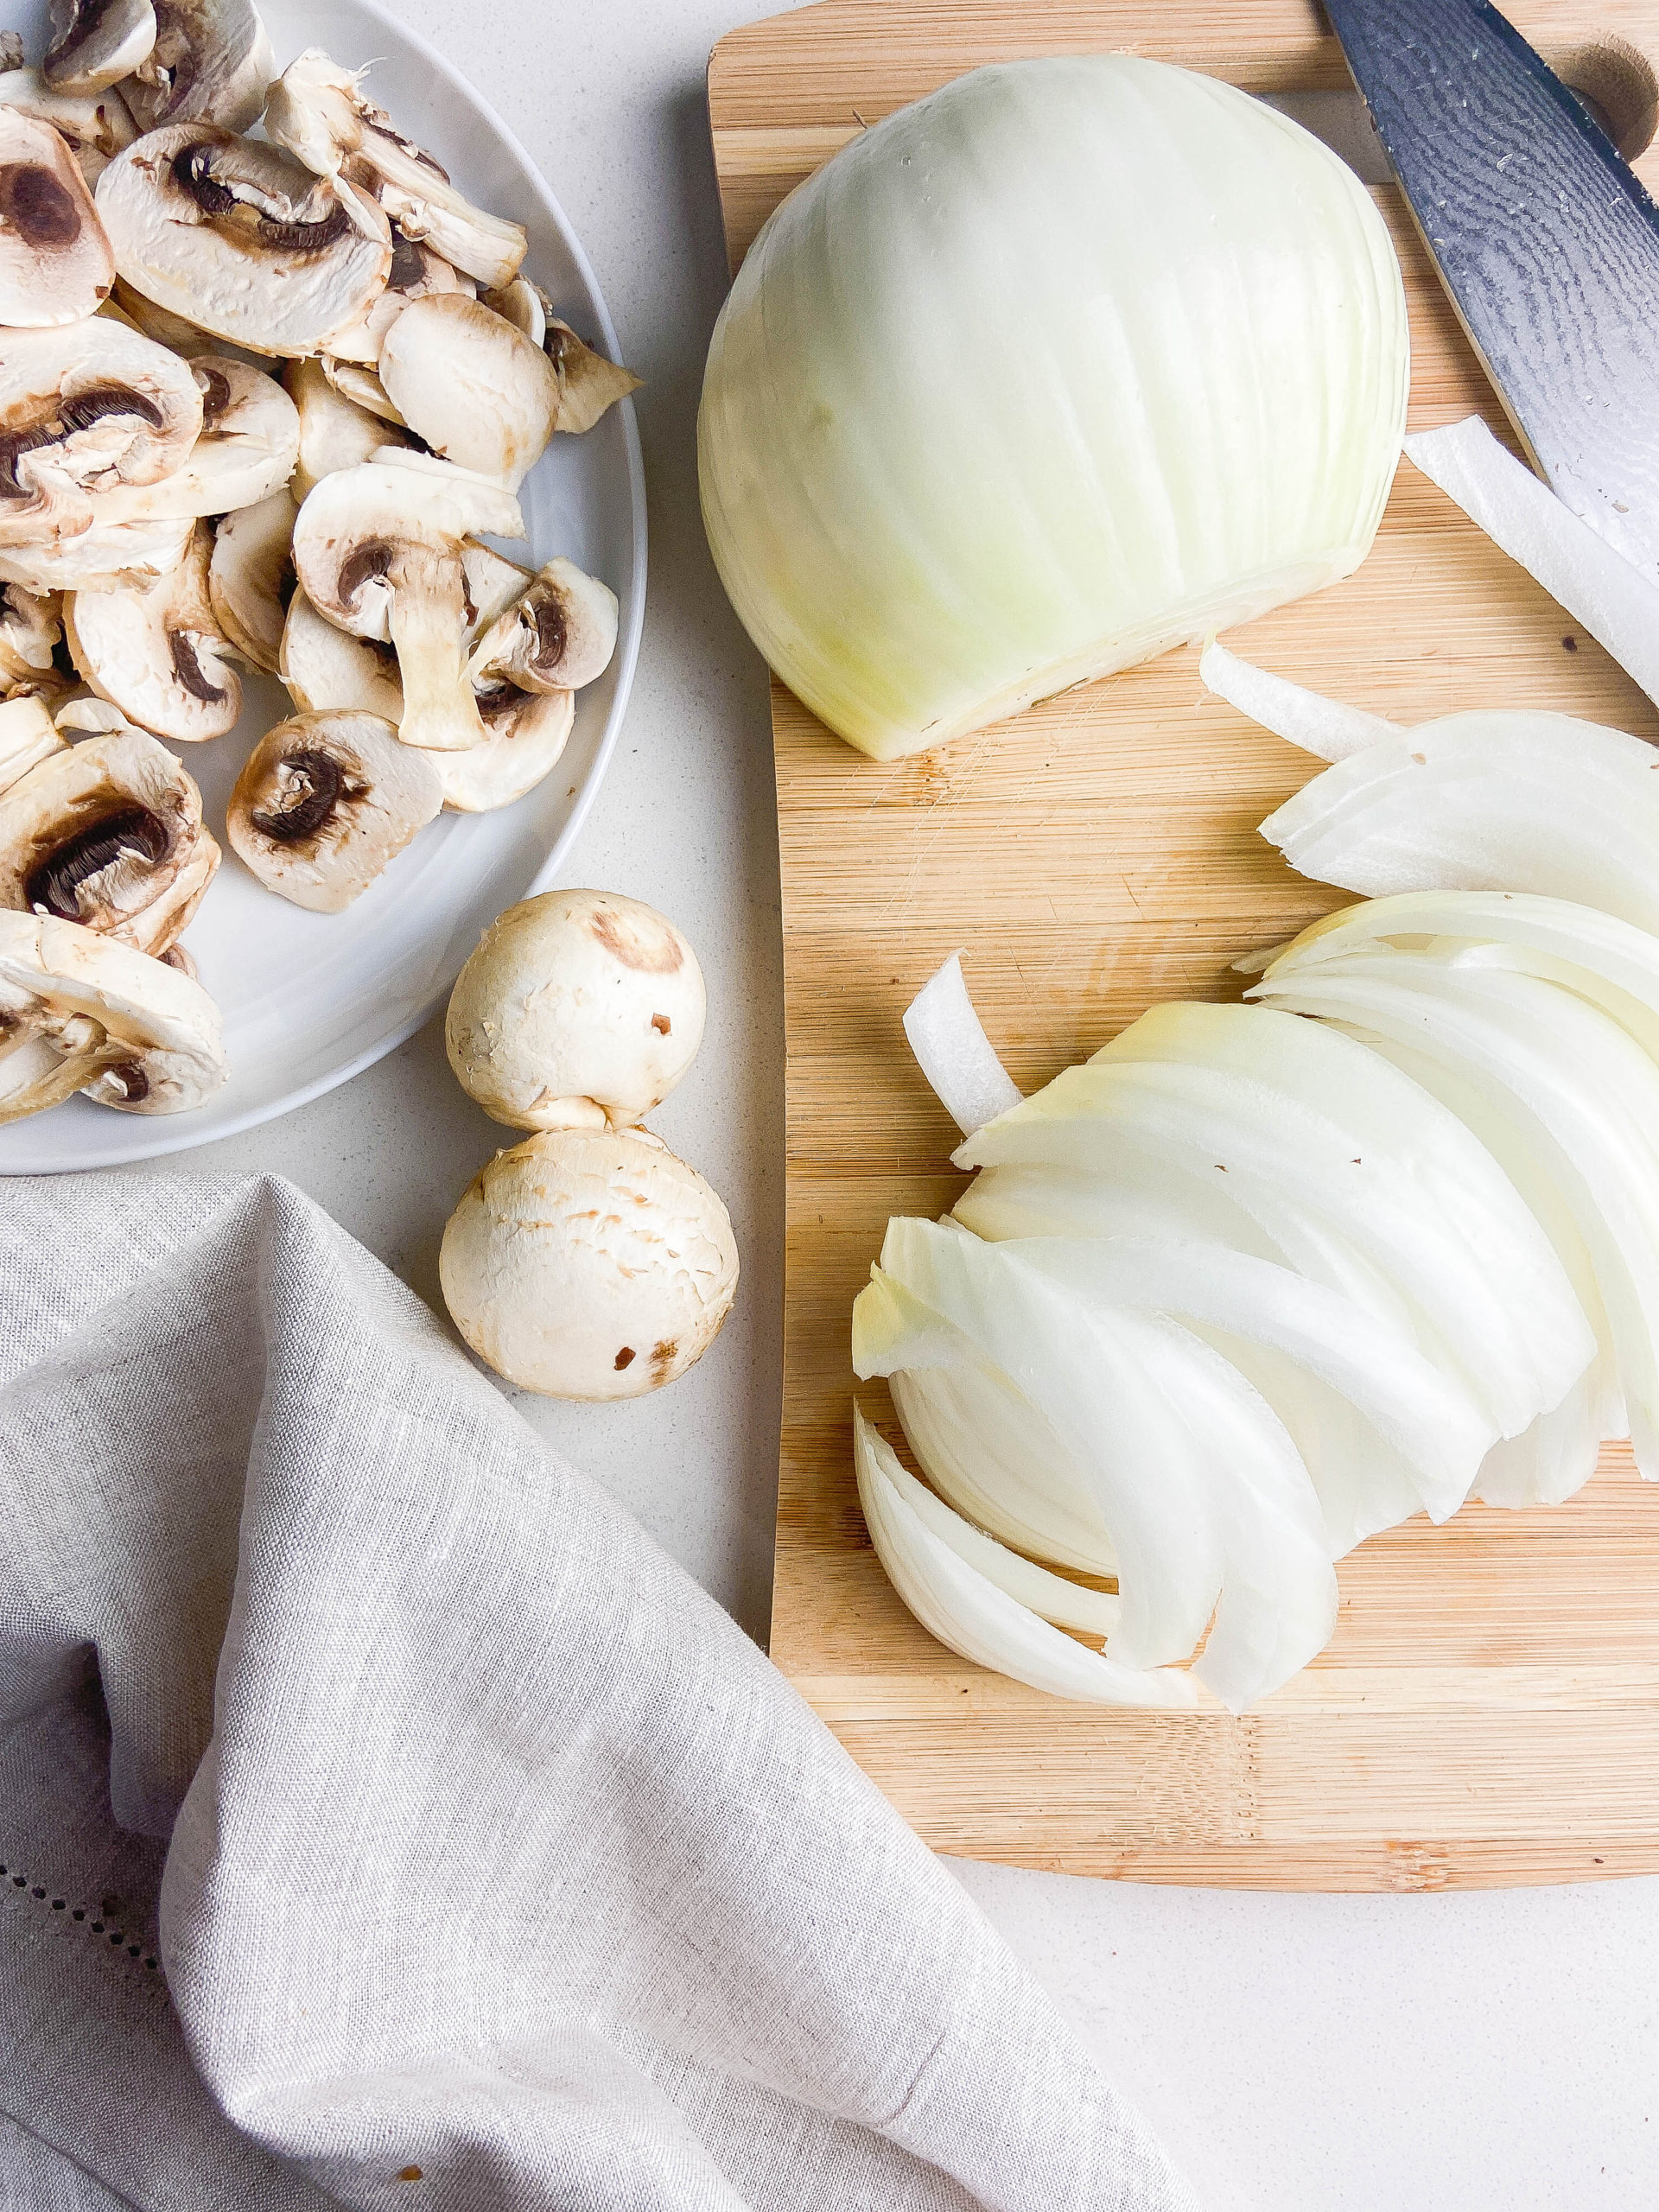 Overhead photo of sliced onions and mushrooms on wooden cutting board.